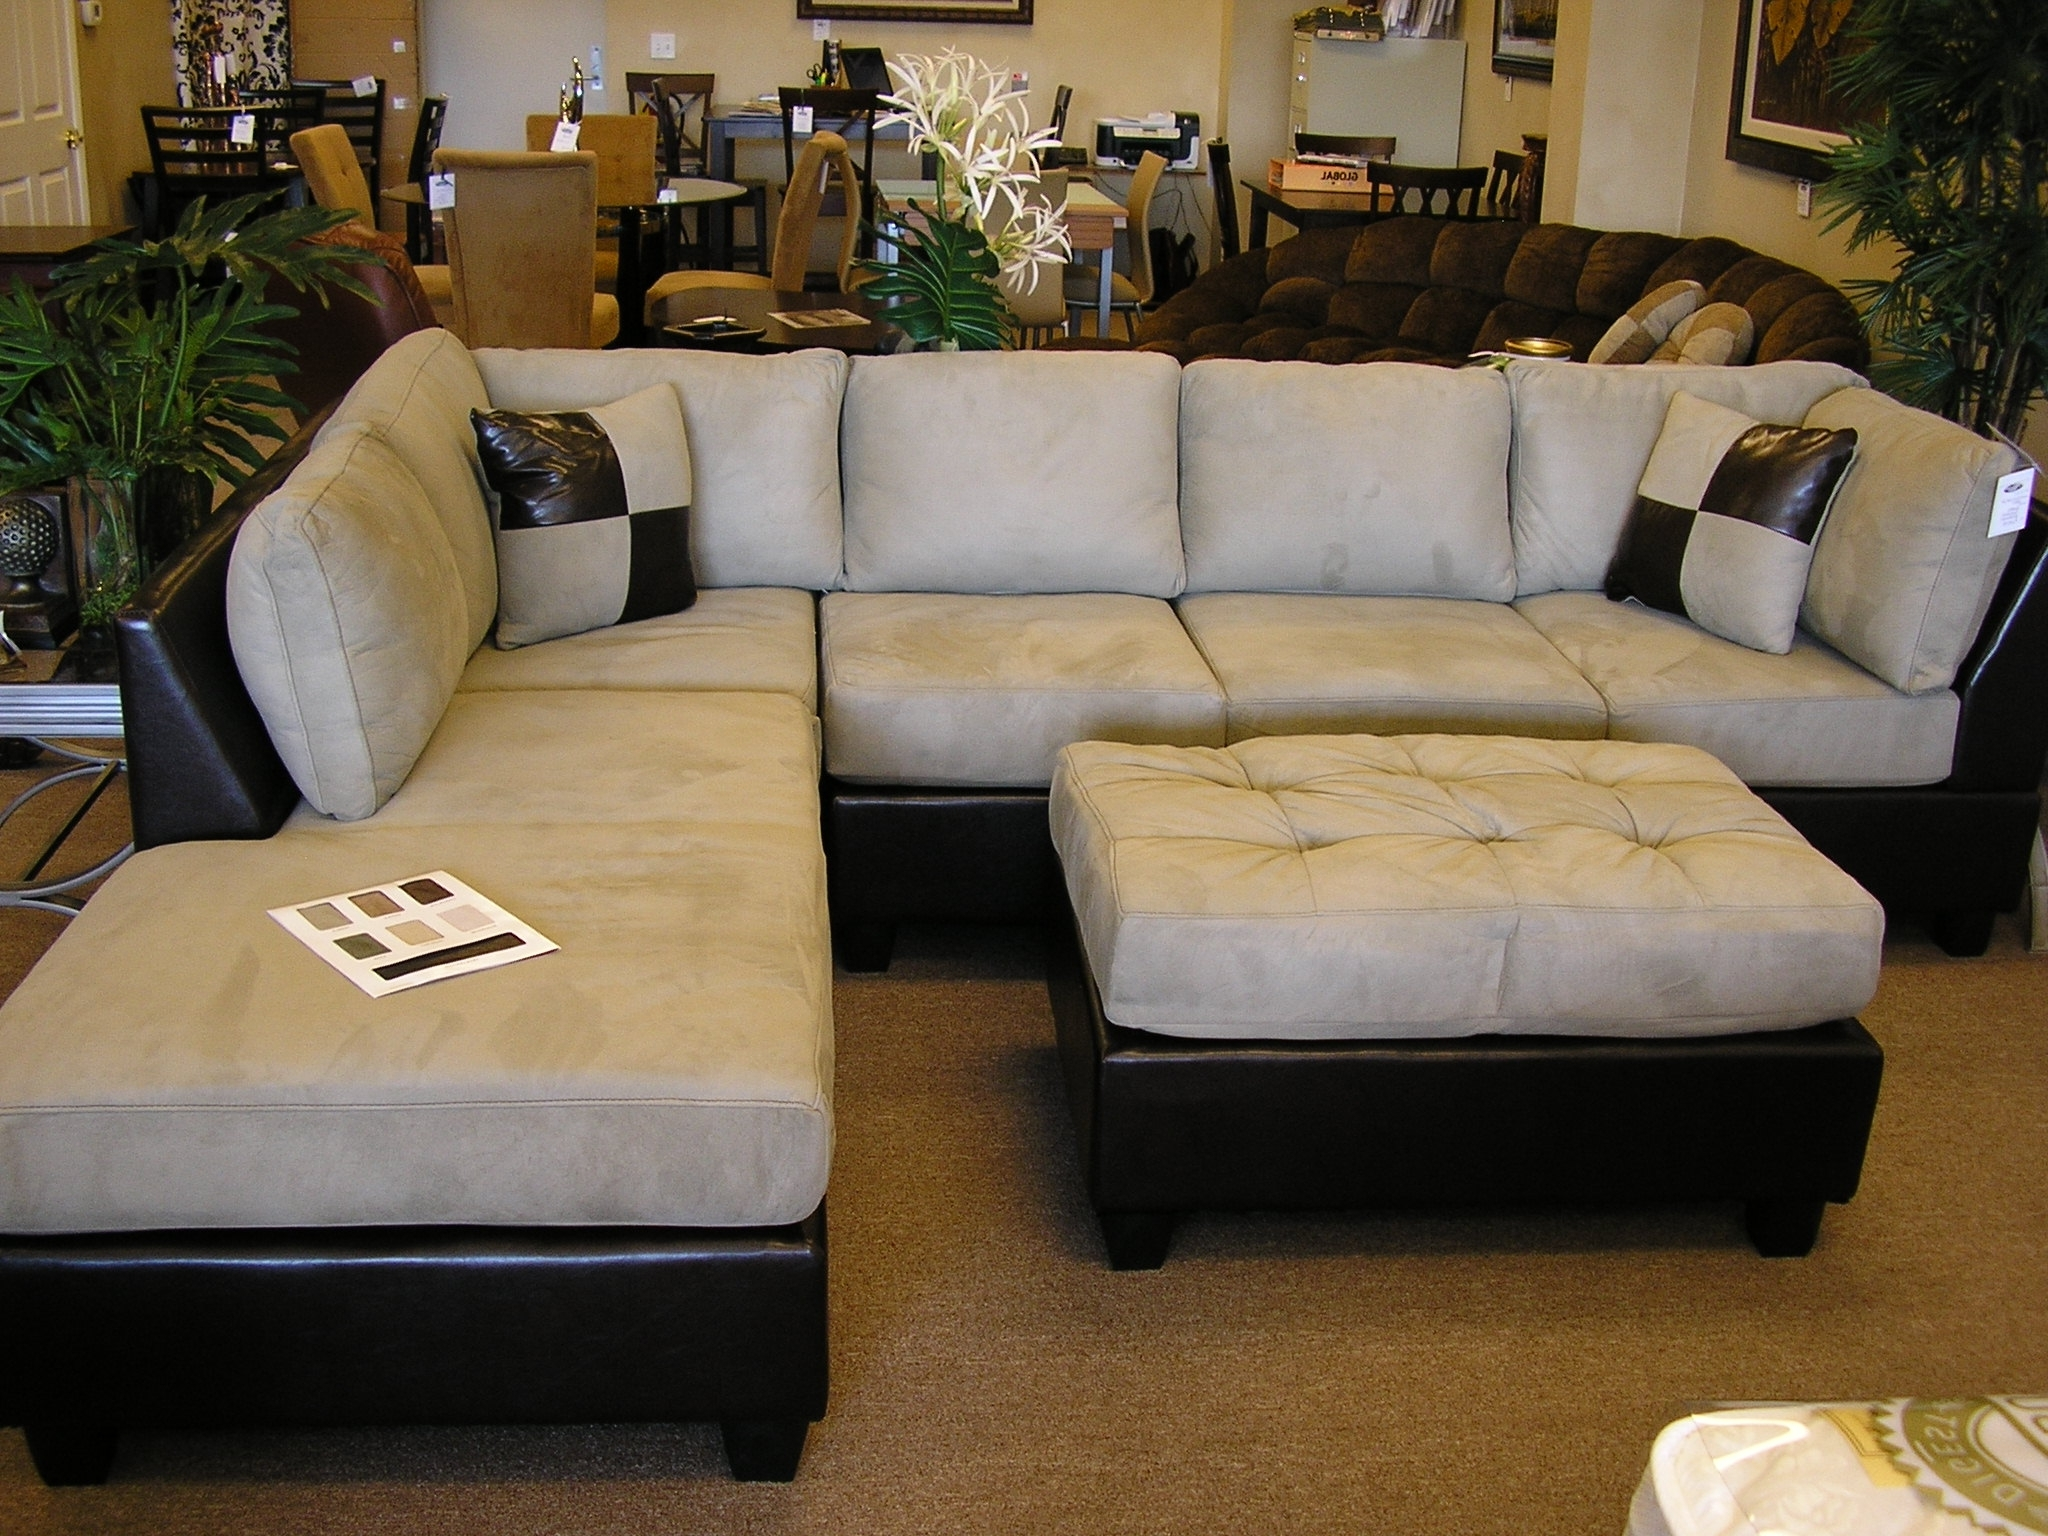 Furniture : Sectional Chaise Lounge Sofa Double Along With With Latest Sofas With Chaise And Ottoman (View 7 of 15)